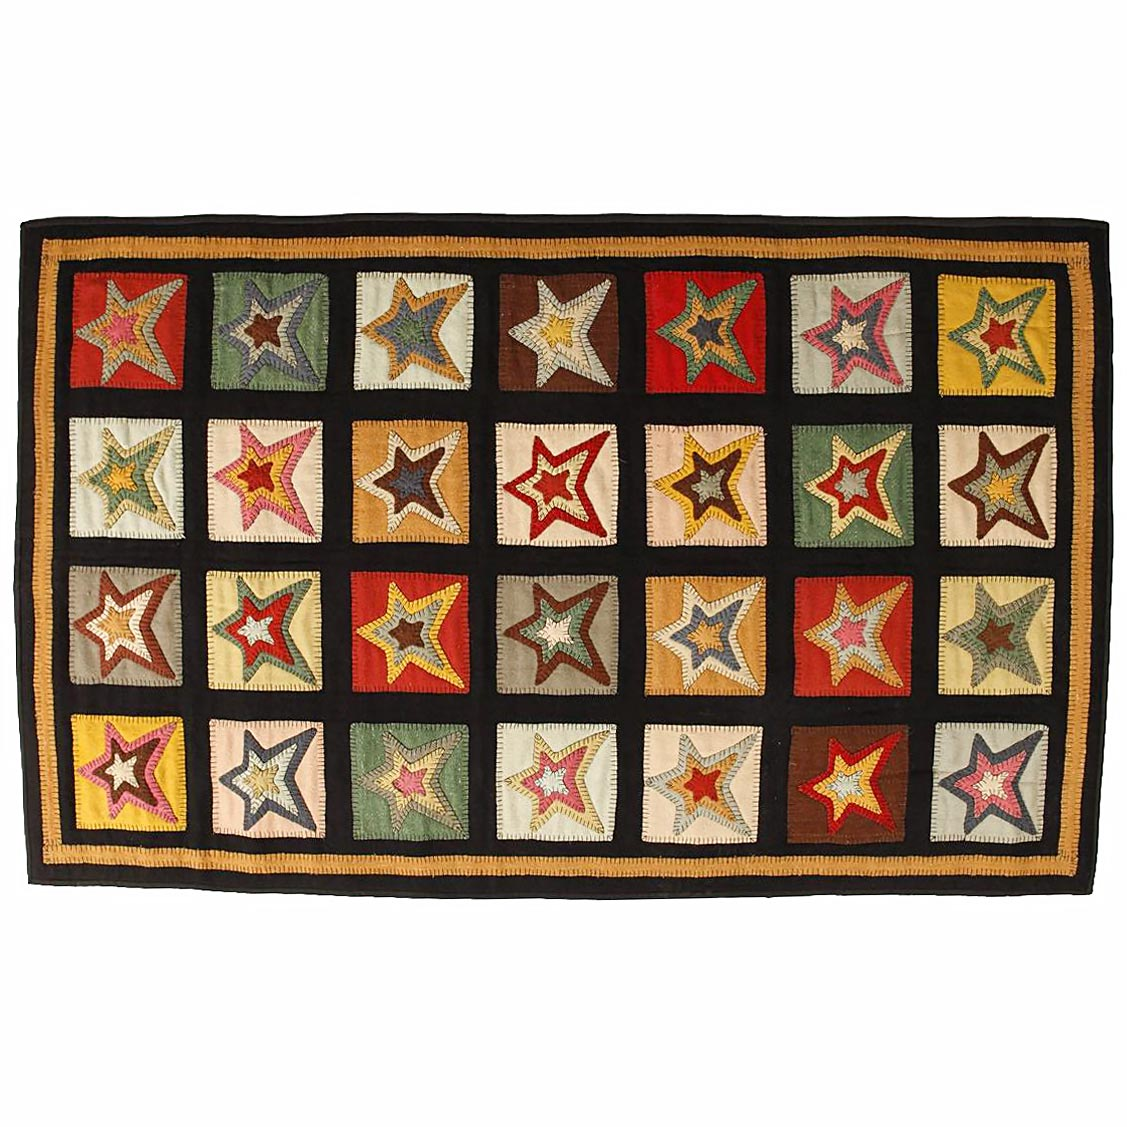 Homespice primitive area rugs rectangle 2x3 8x10 star for Garden room 2x3